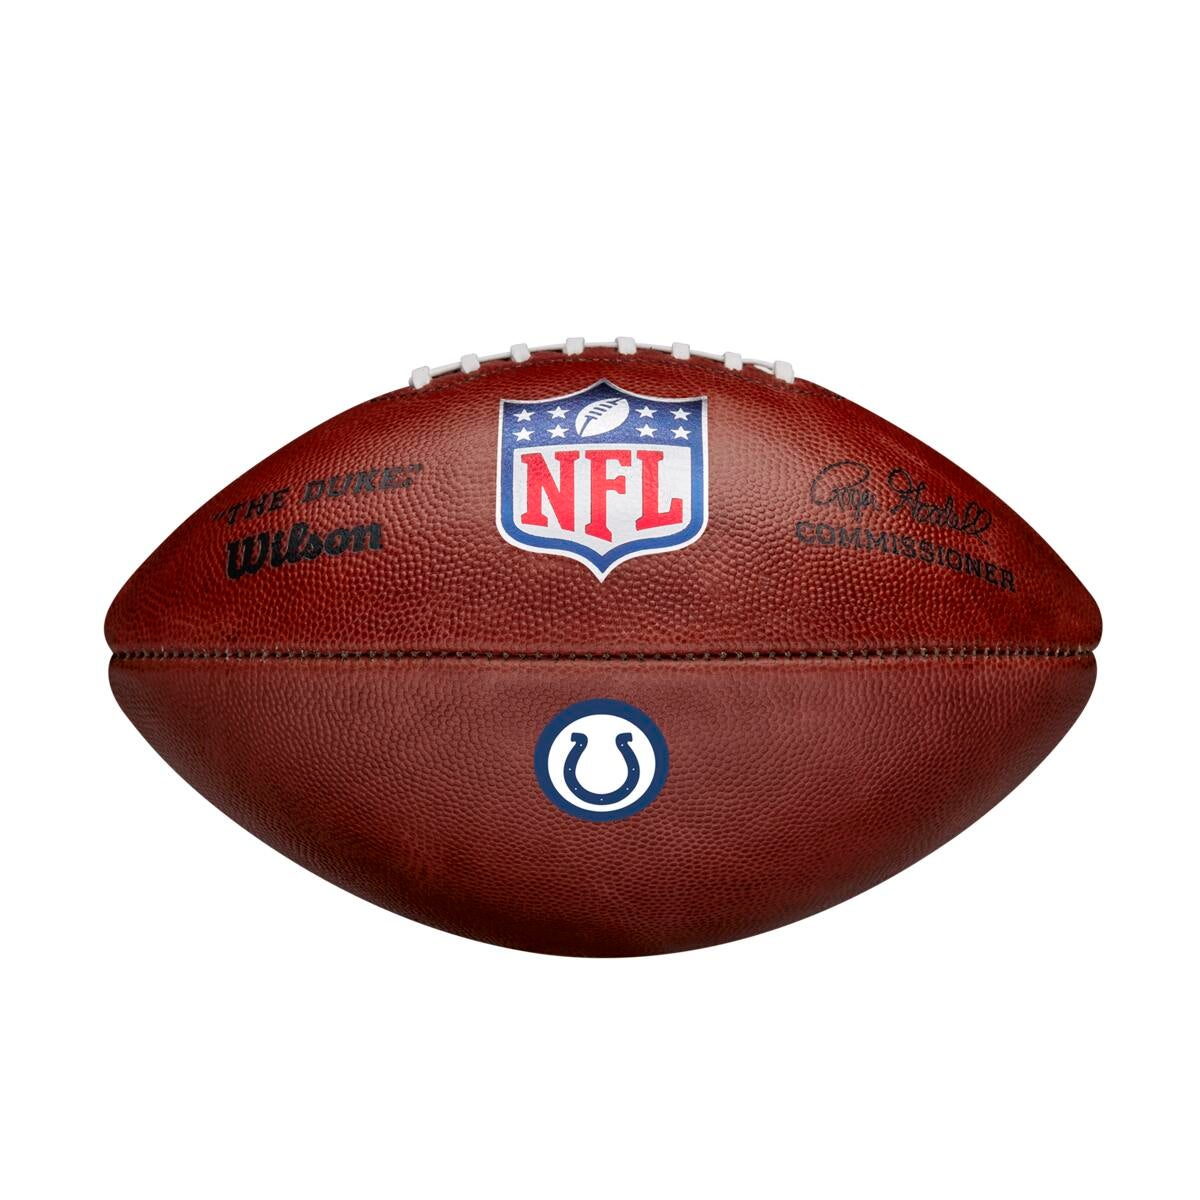 The Duke Decal NFL Football - Indianapolis Colts